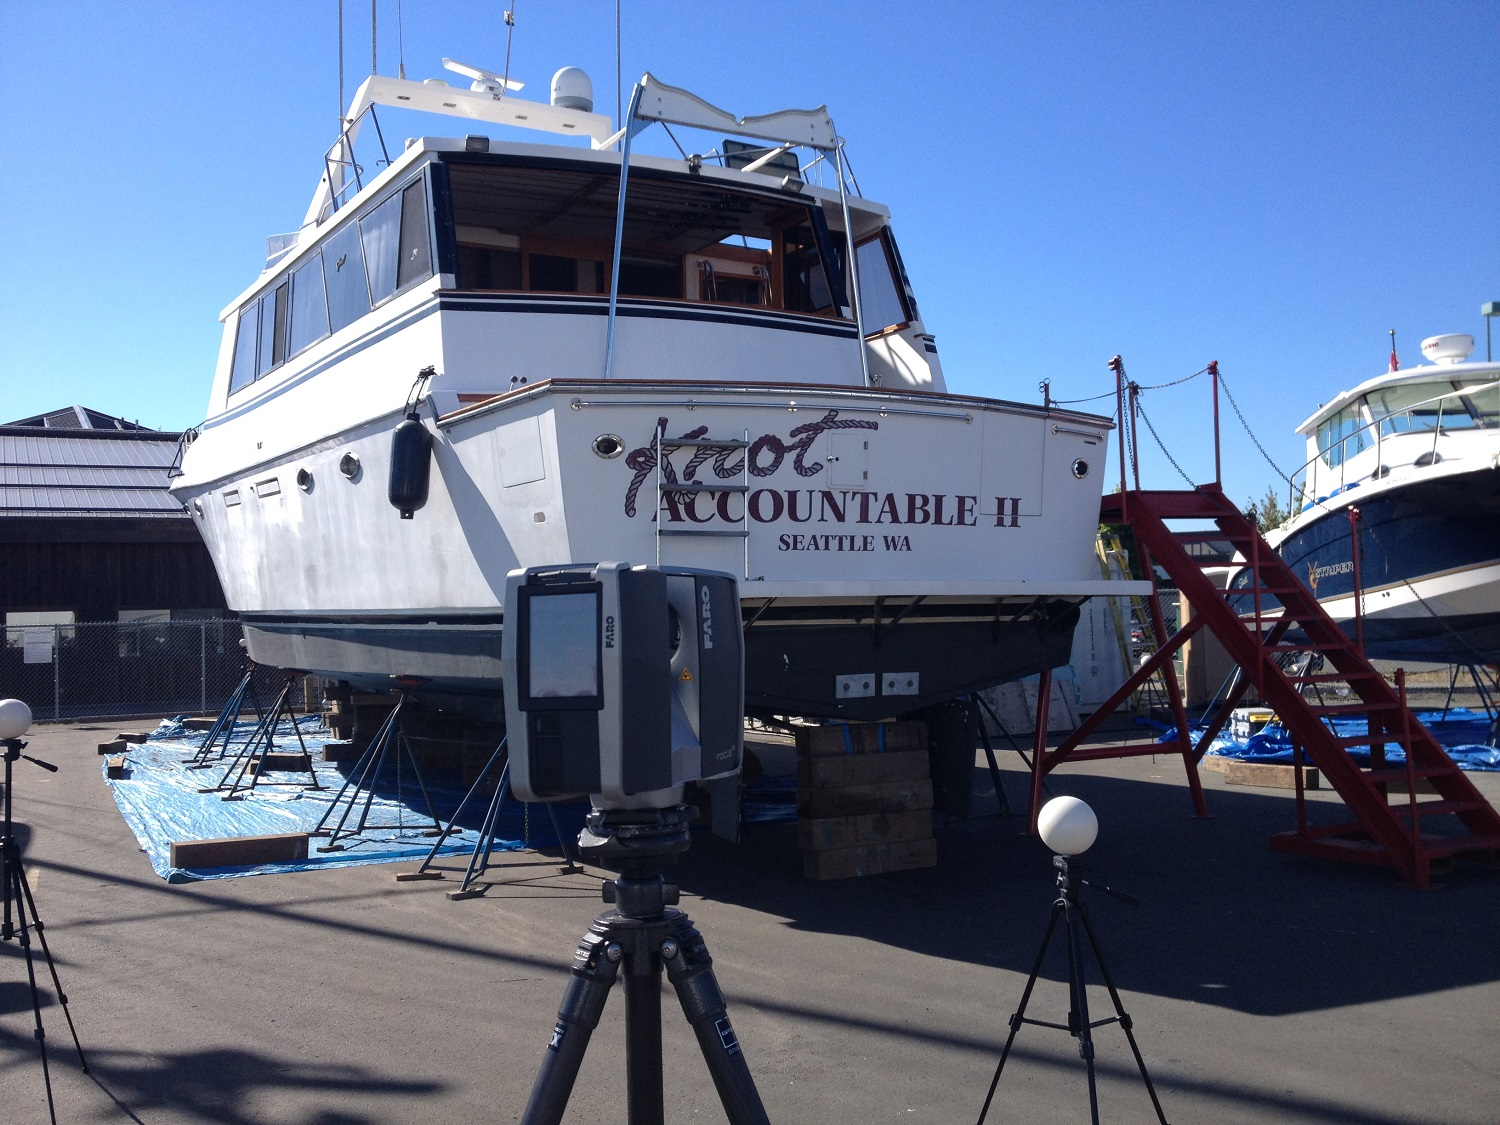 Laser scanner and yacht